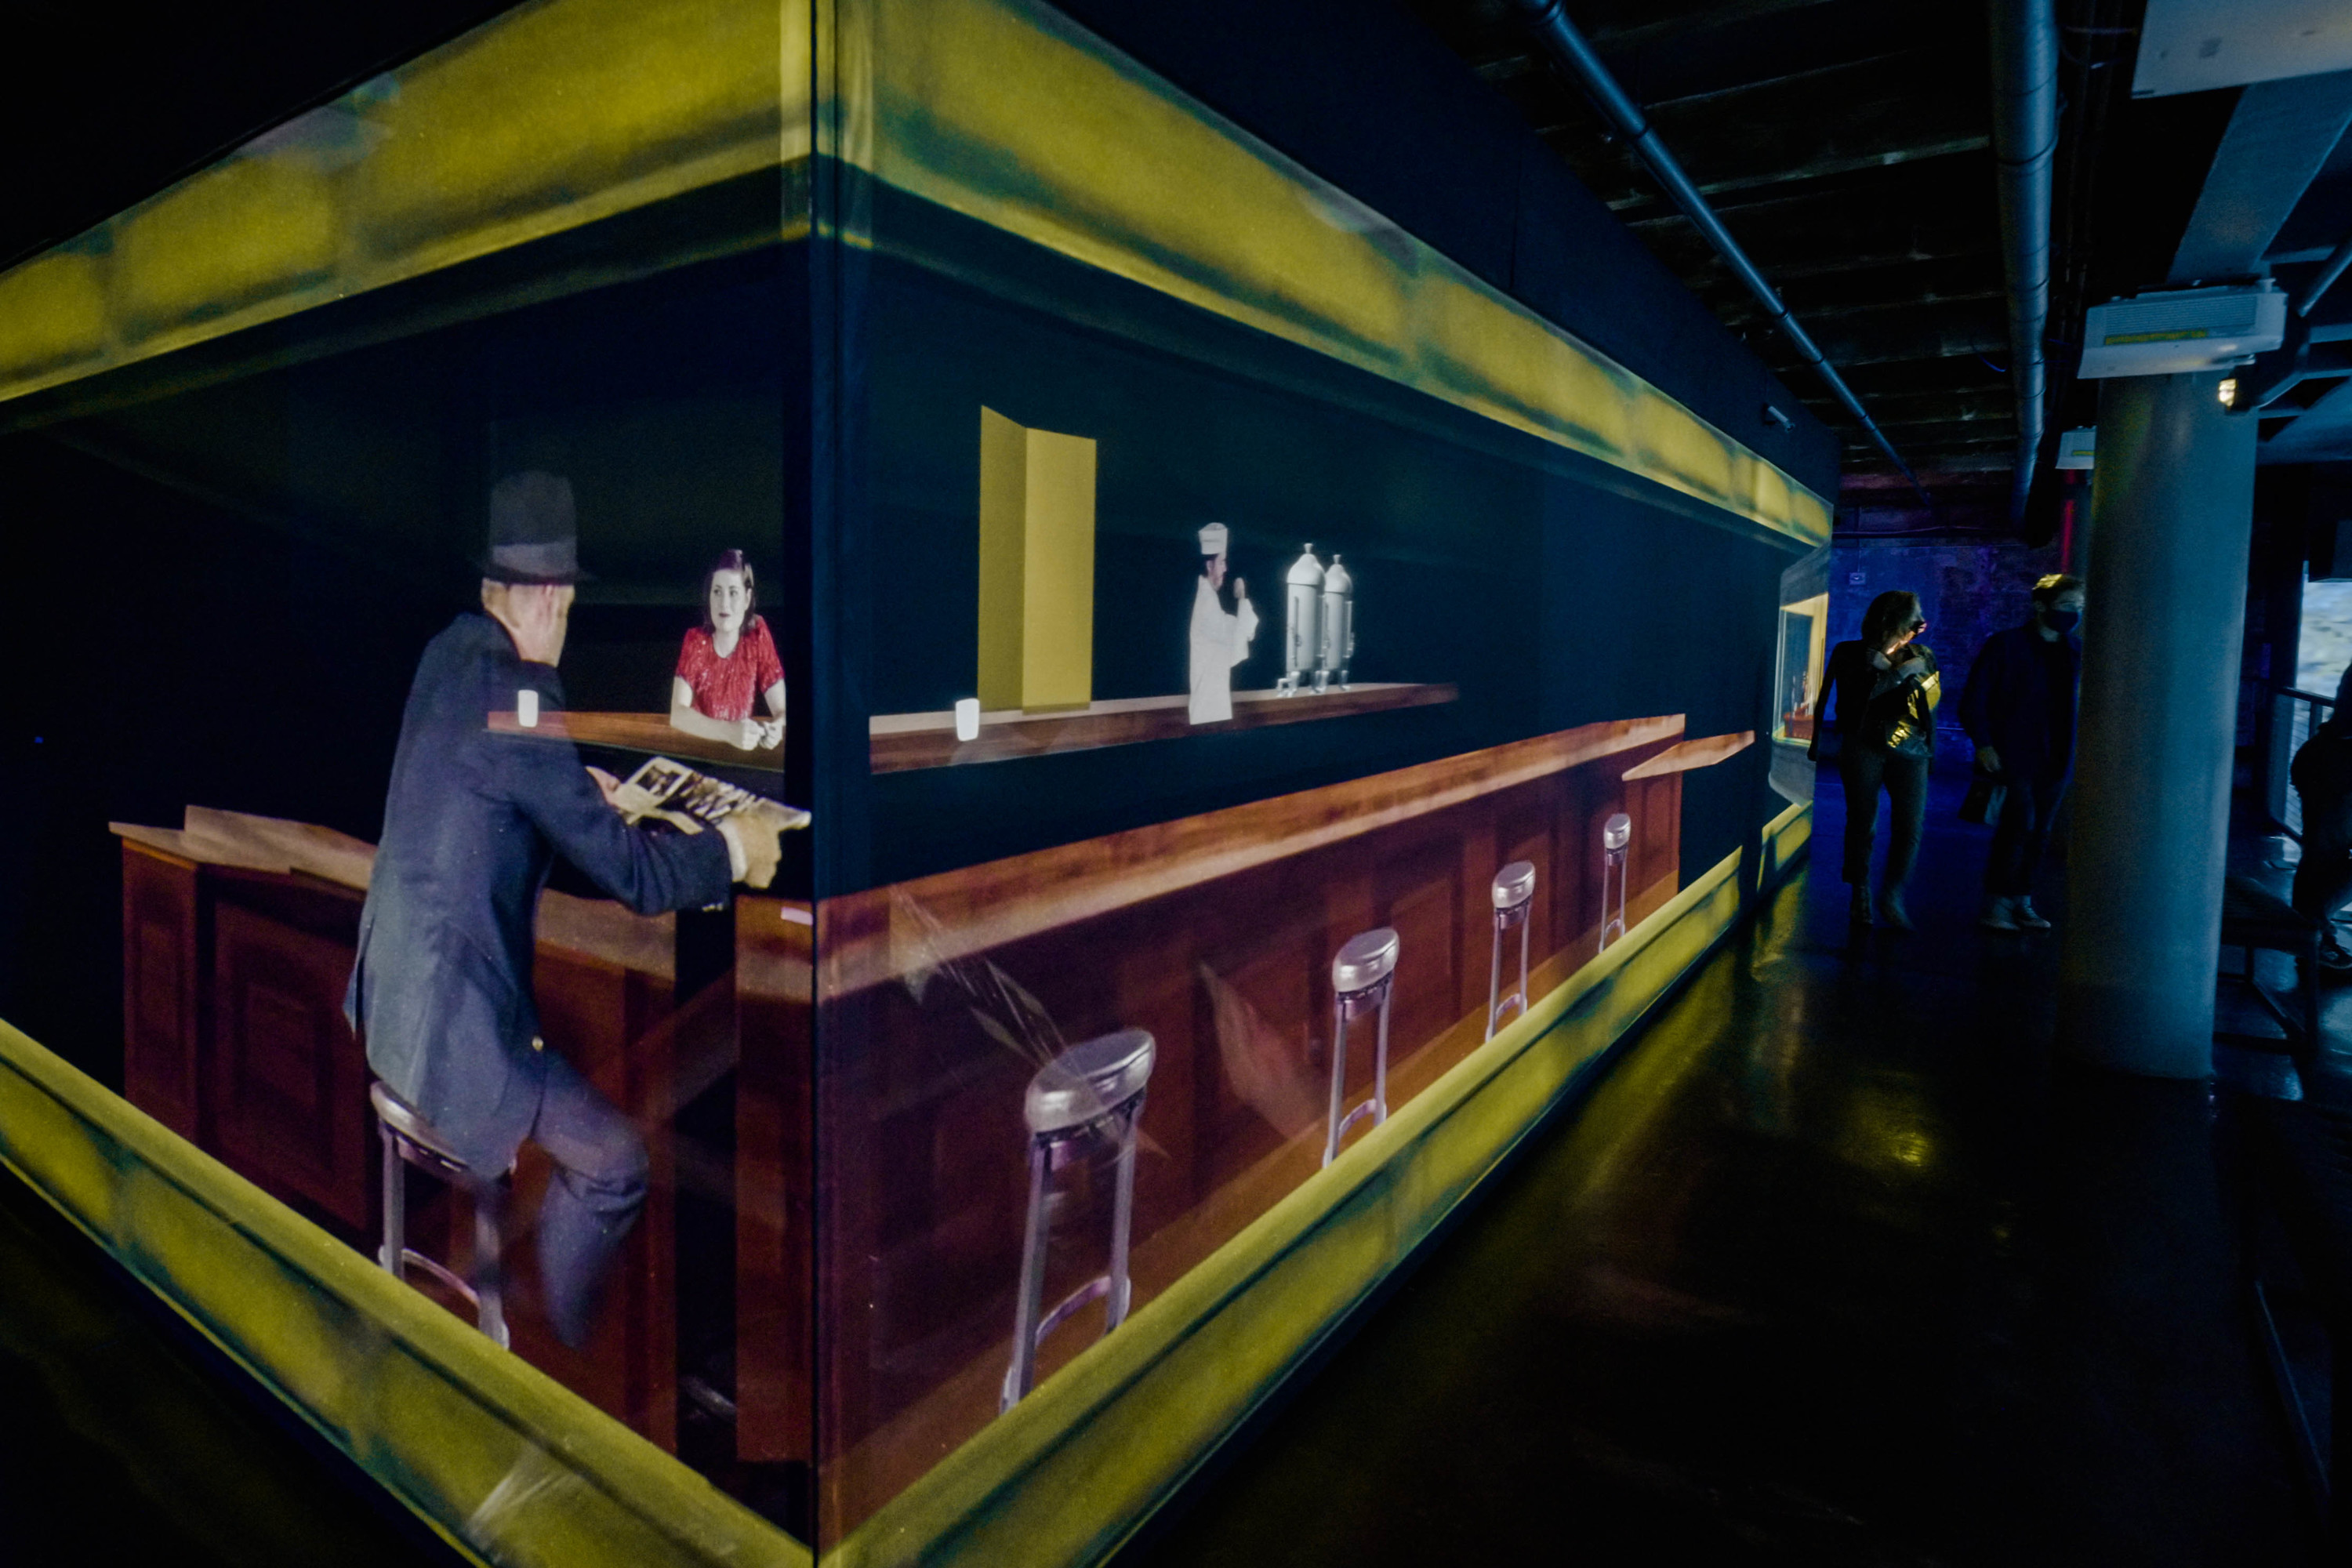 This immersive installation lets you see inside an Edward Hopper painting